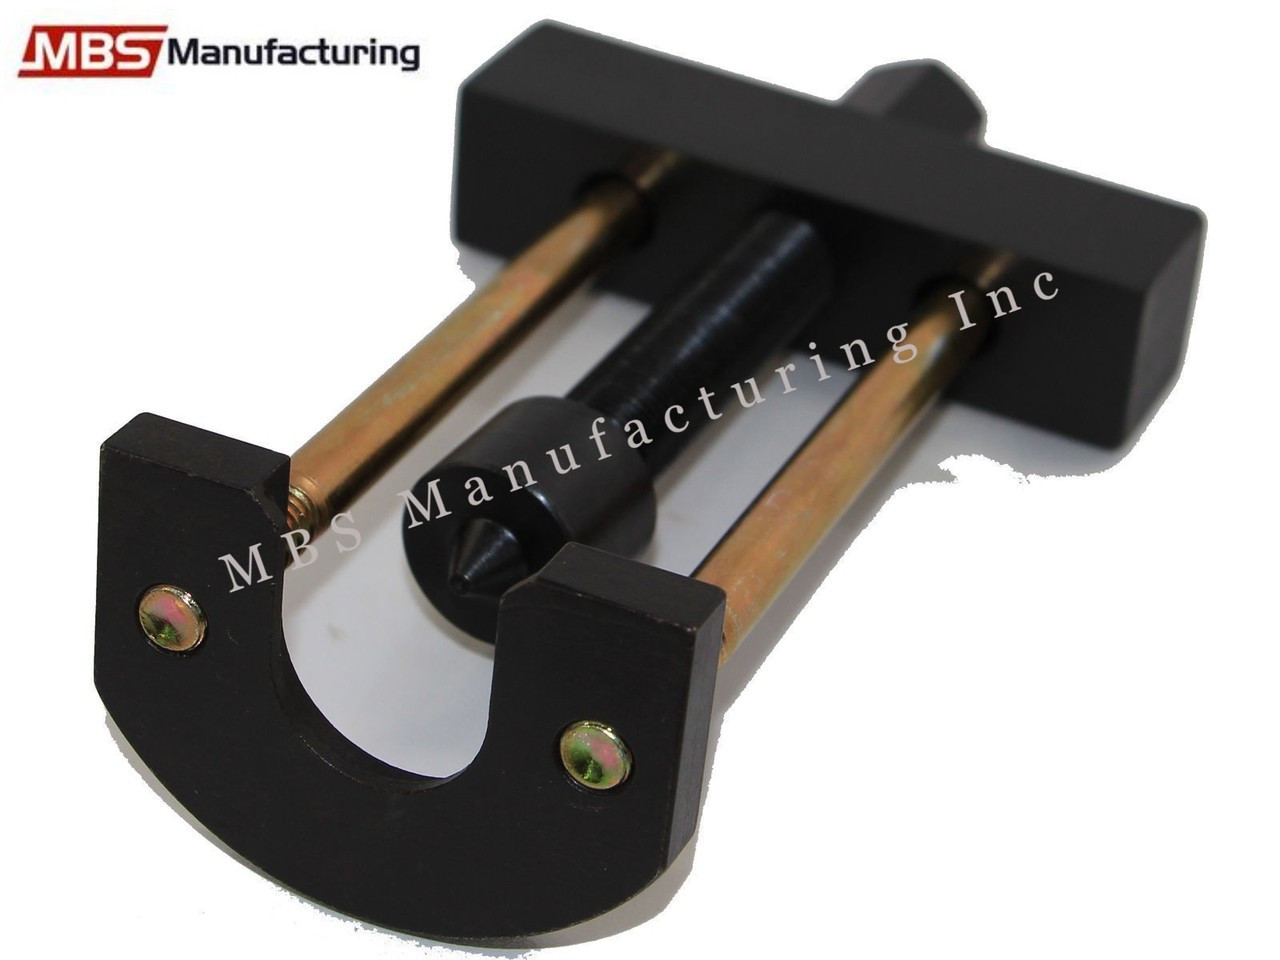 Compatible for Harley Big Twin Transmission Mainshaft Bearing Inner Race Puller and Installation Tool Set 34902